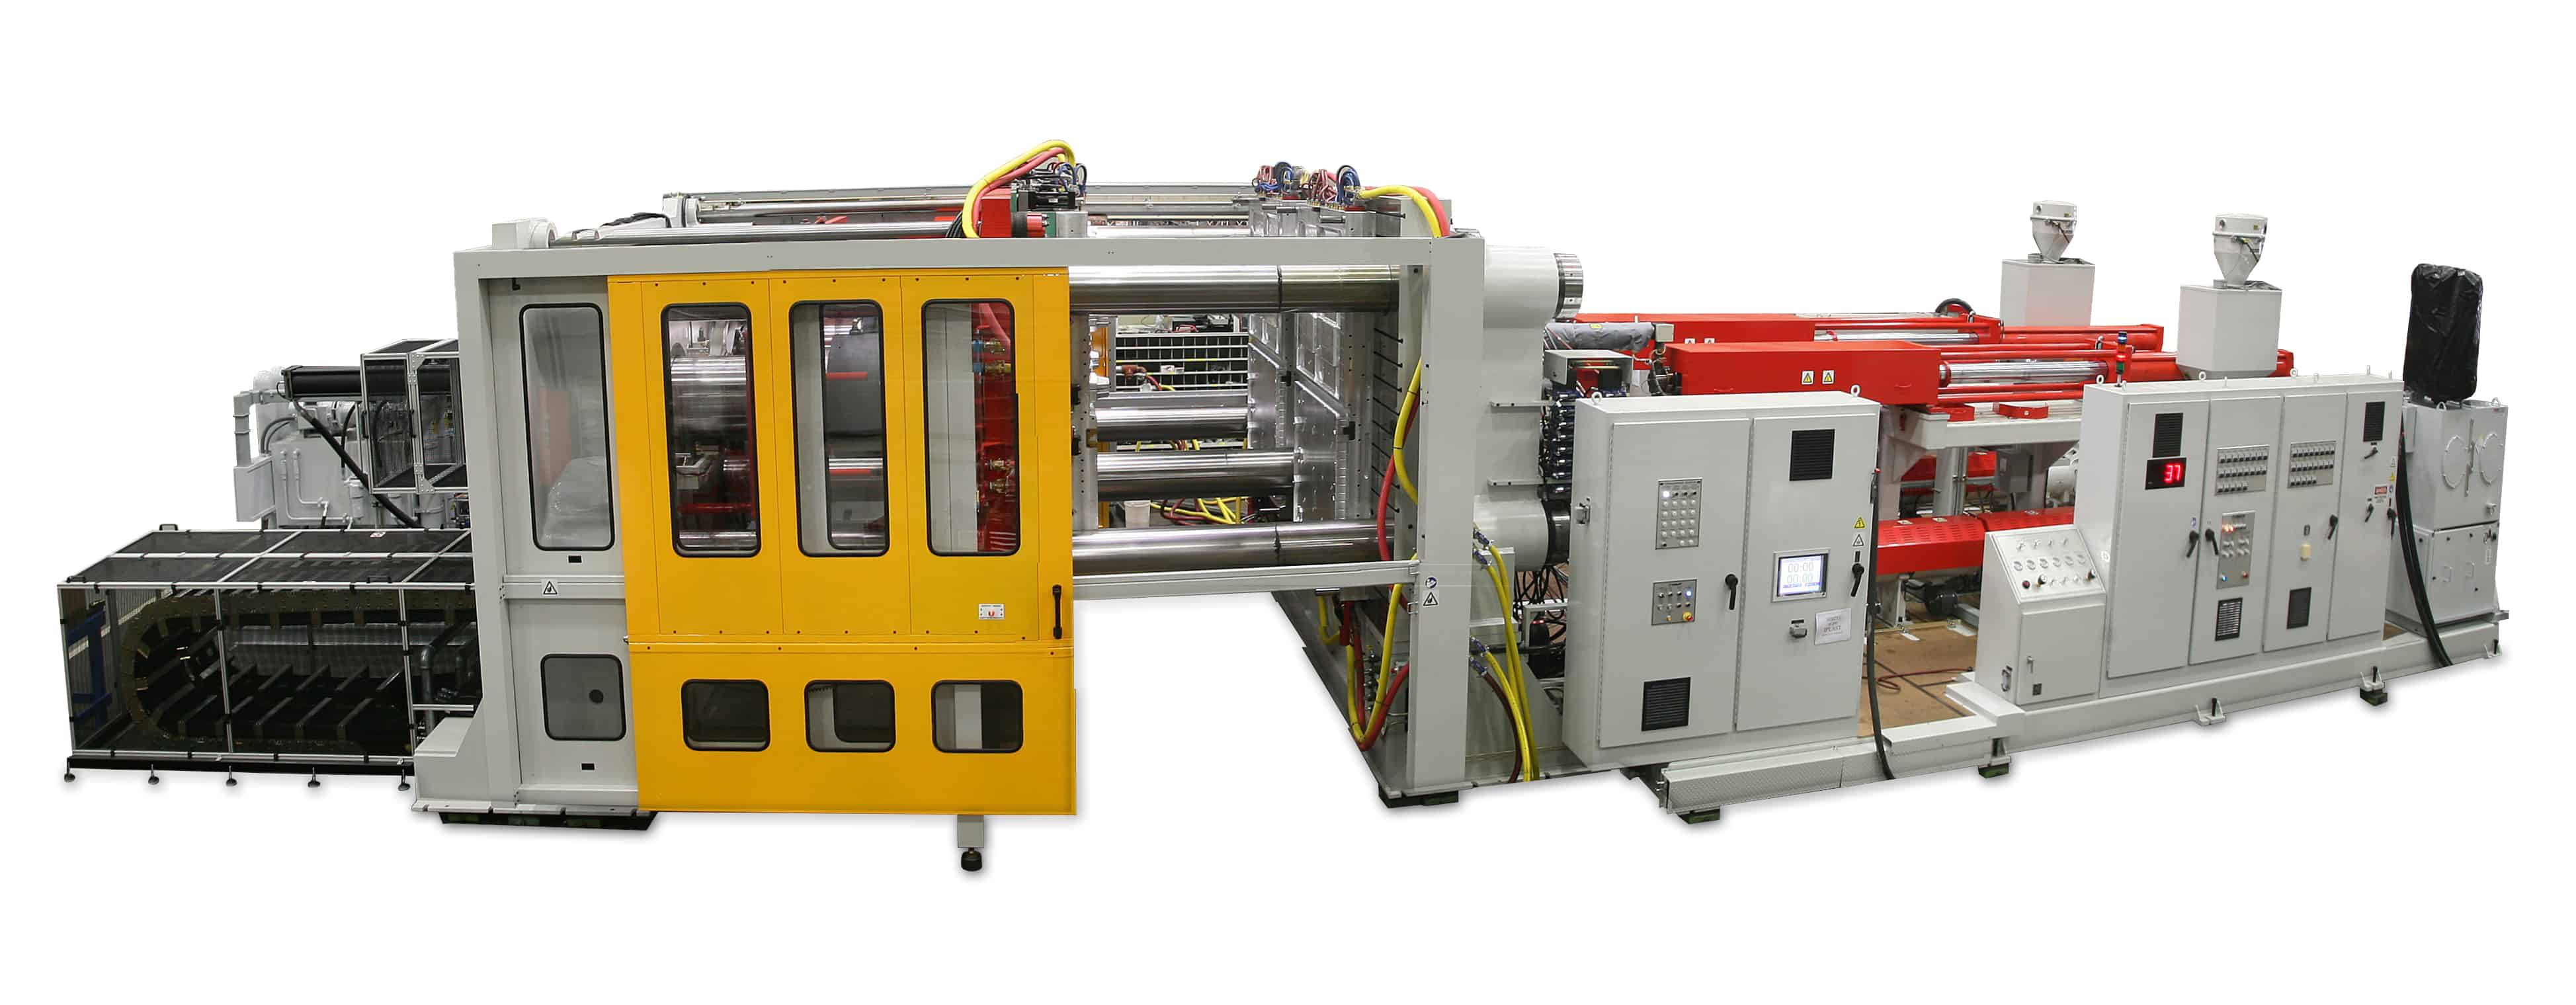 Photo of Uniloy LPIM - low pressure injection blow molding machine